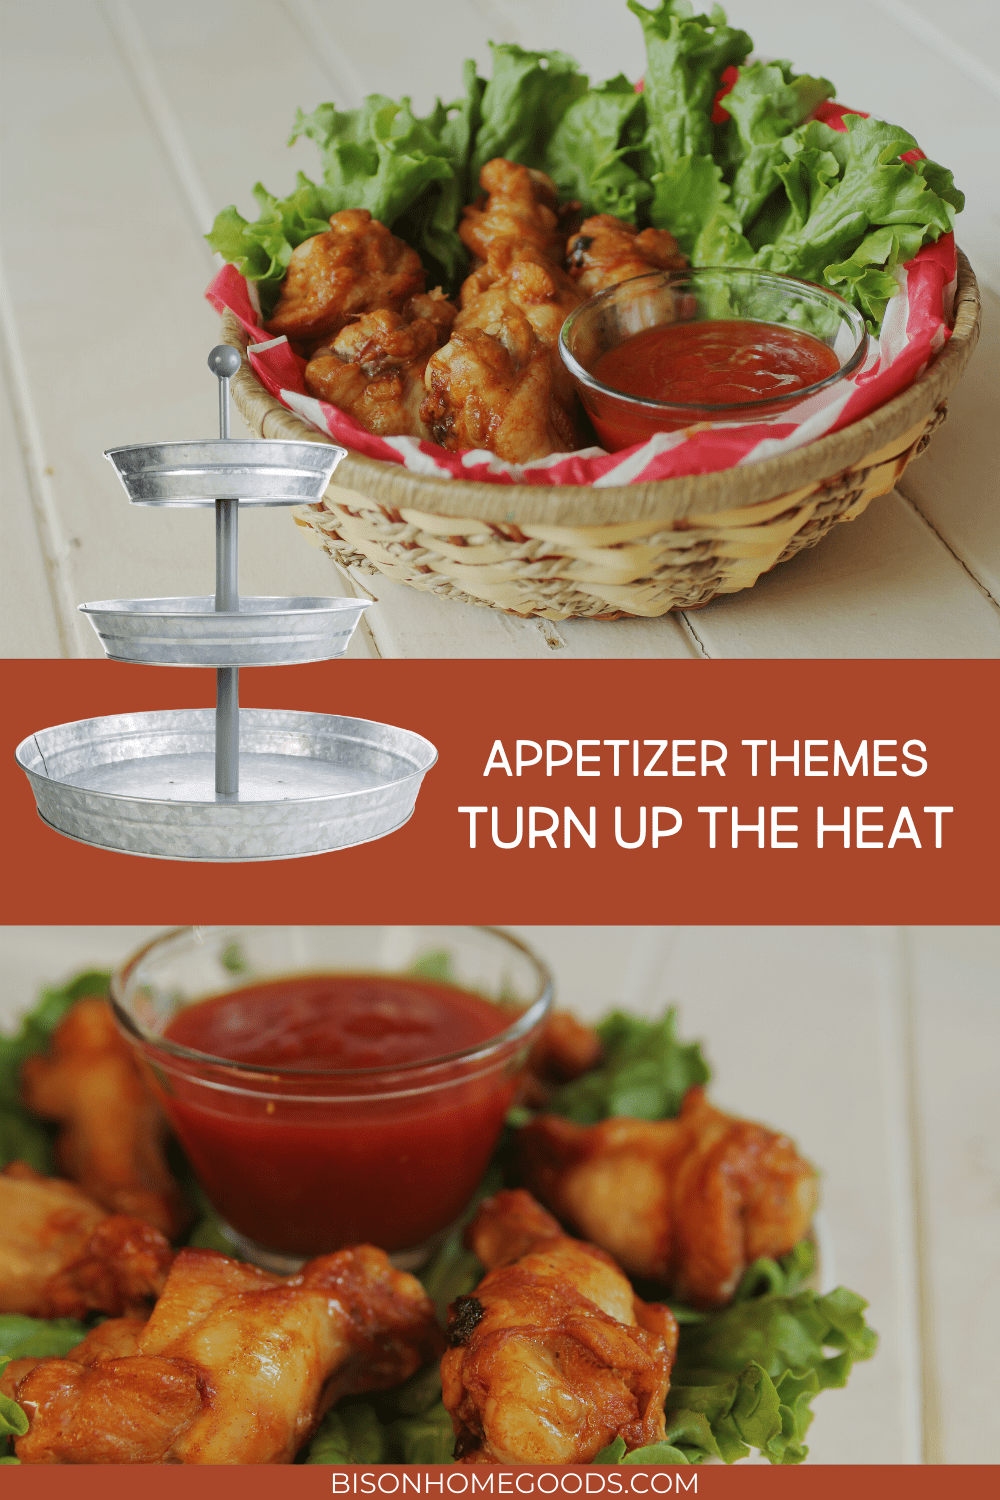 4 Appetizer Themes for Your Galvanized 3-Tier Tray - Turn Up the Heat